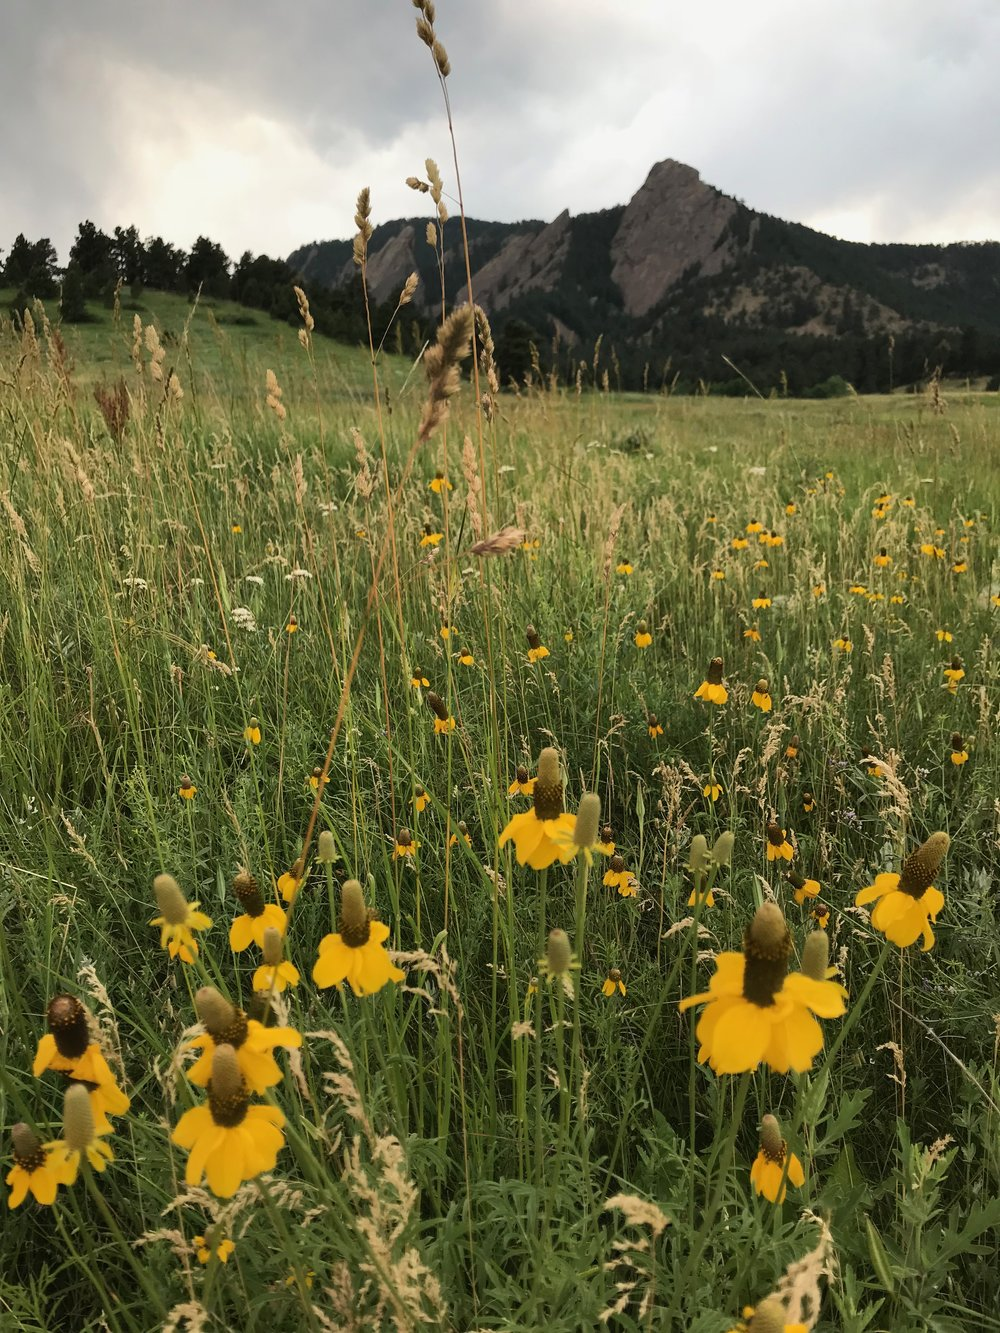 wildflowers at chautauqua park in boulder, colorado— i got to spend some time exploring the gorgeous trails here when i was in boulder for puppet camp.